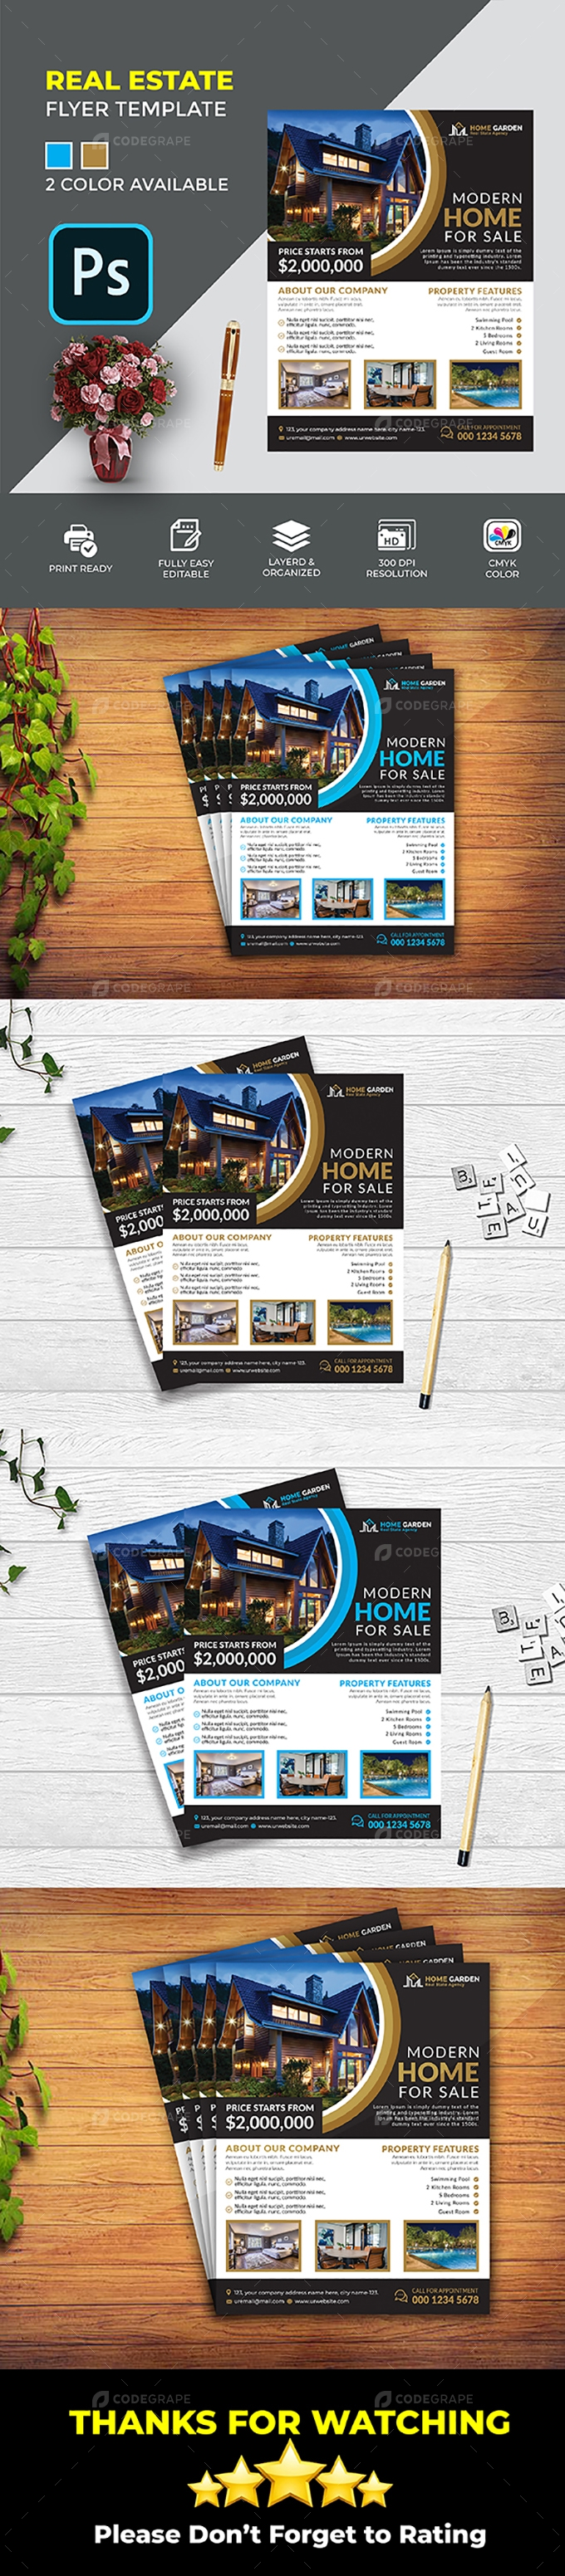 Real Estate Flyer Templeate